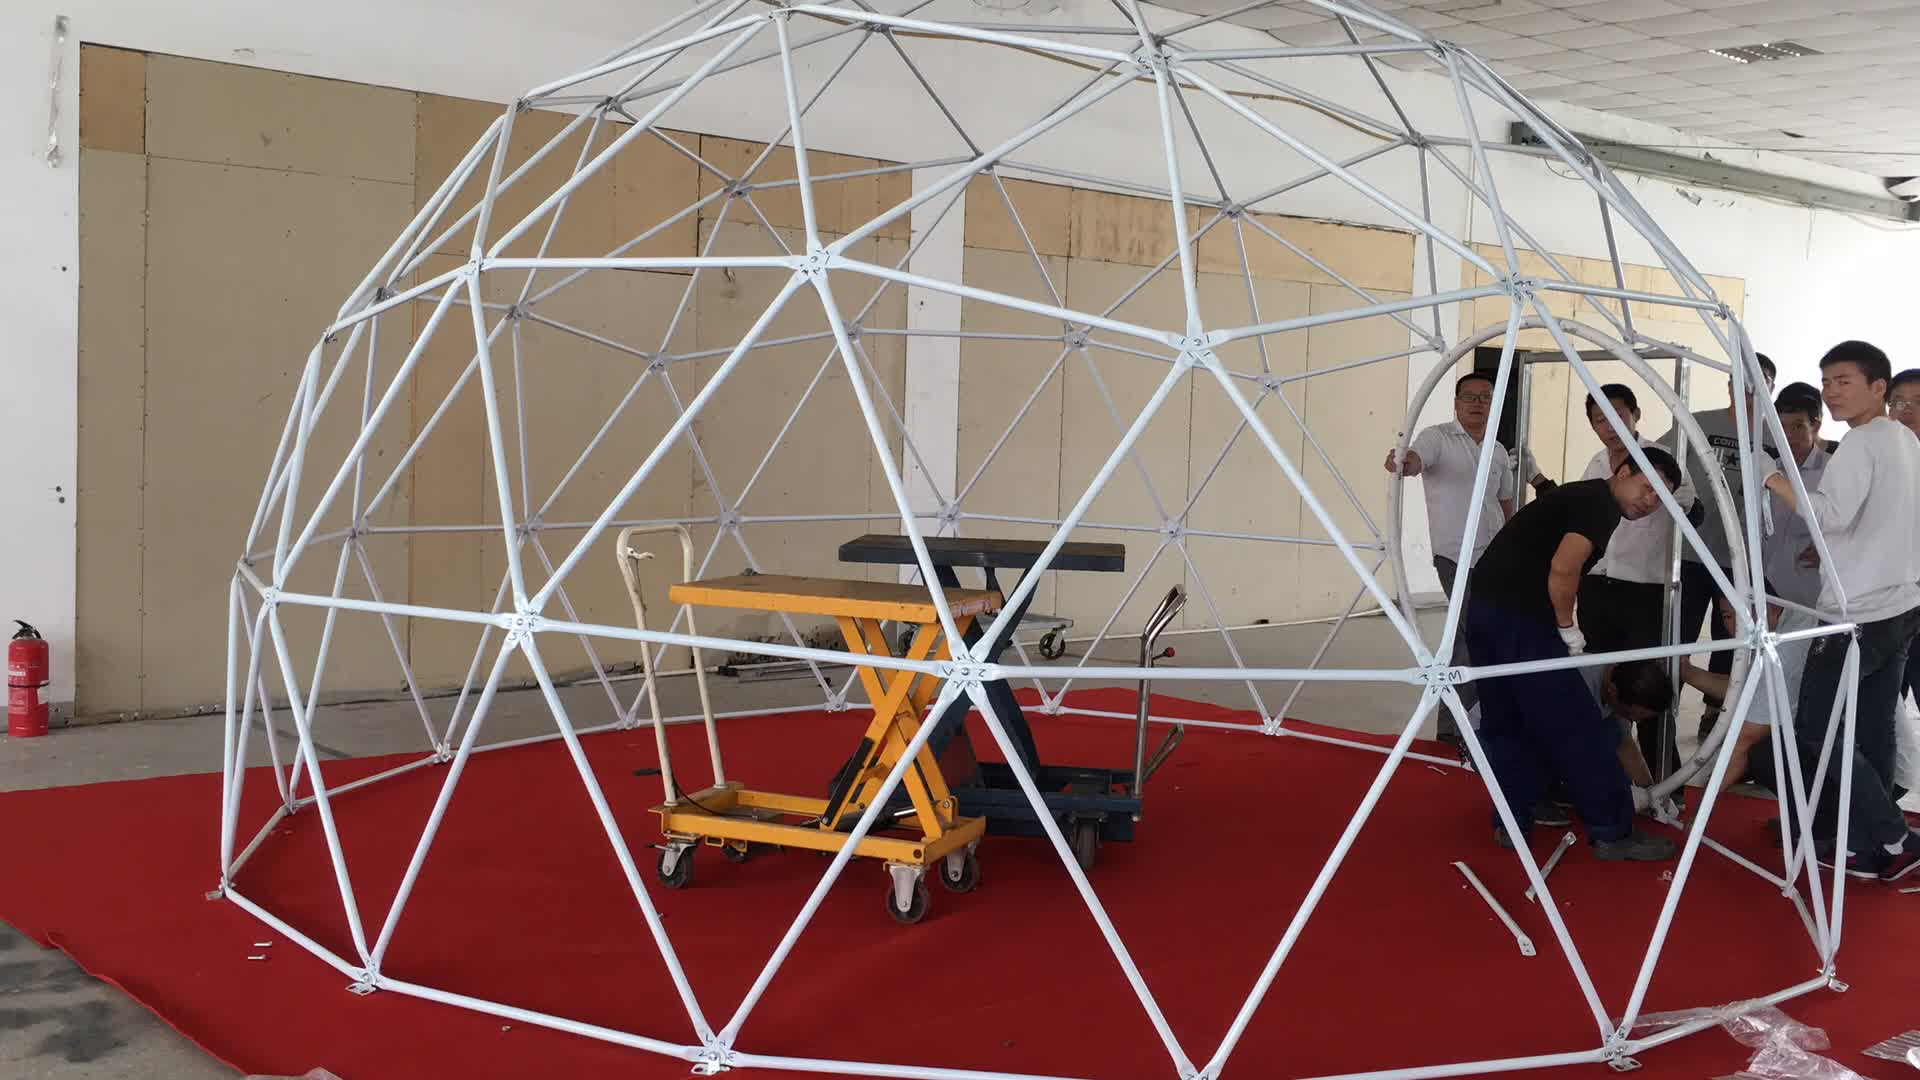 8m diameter heavy duty geodesic dome tent for sale